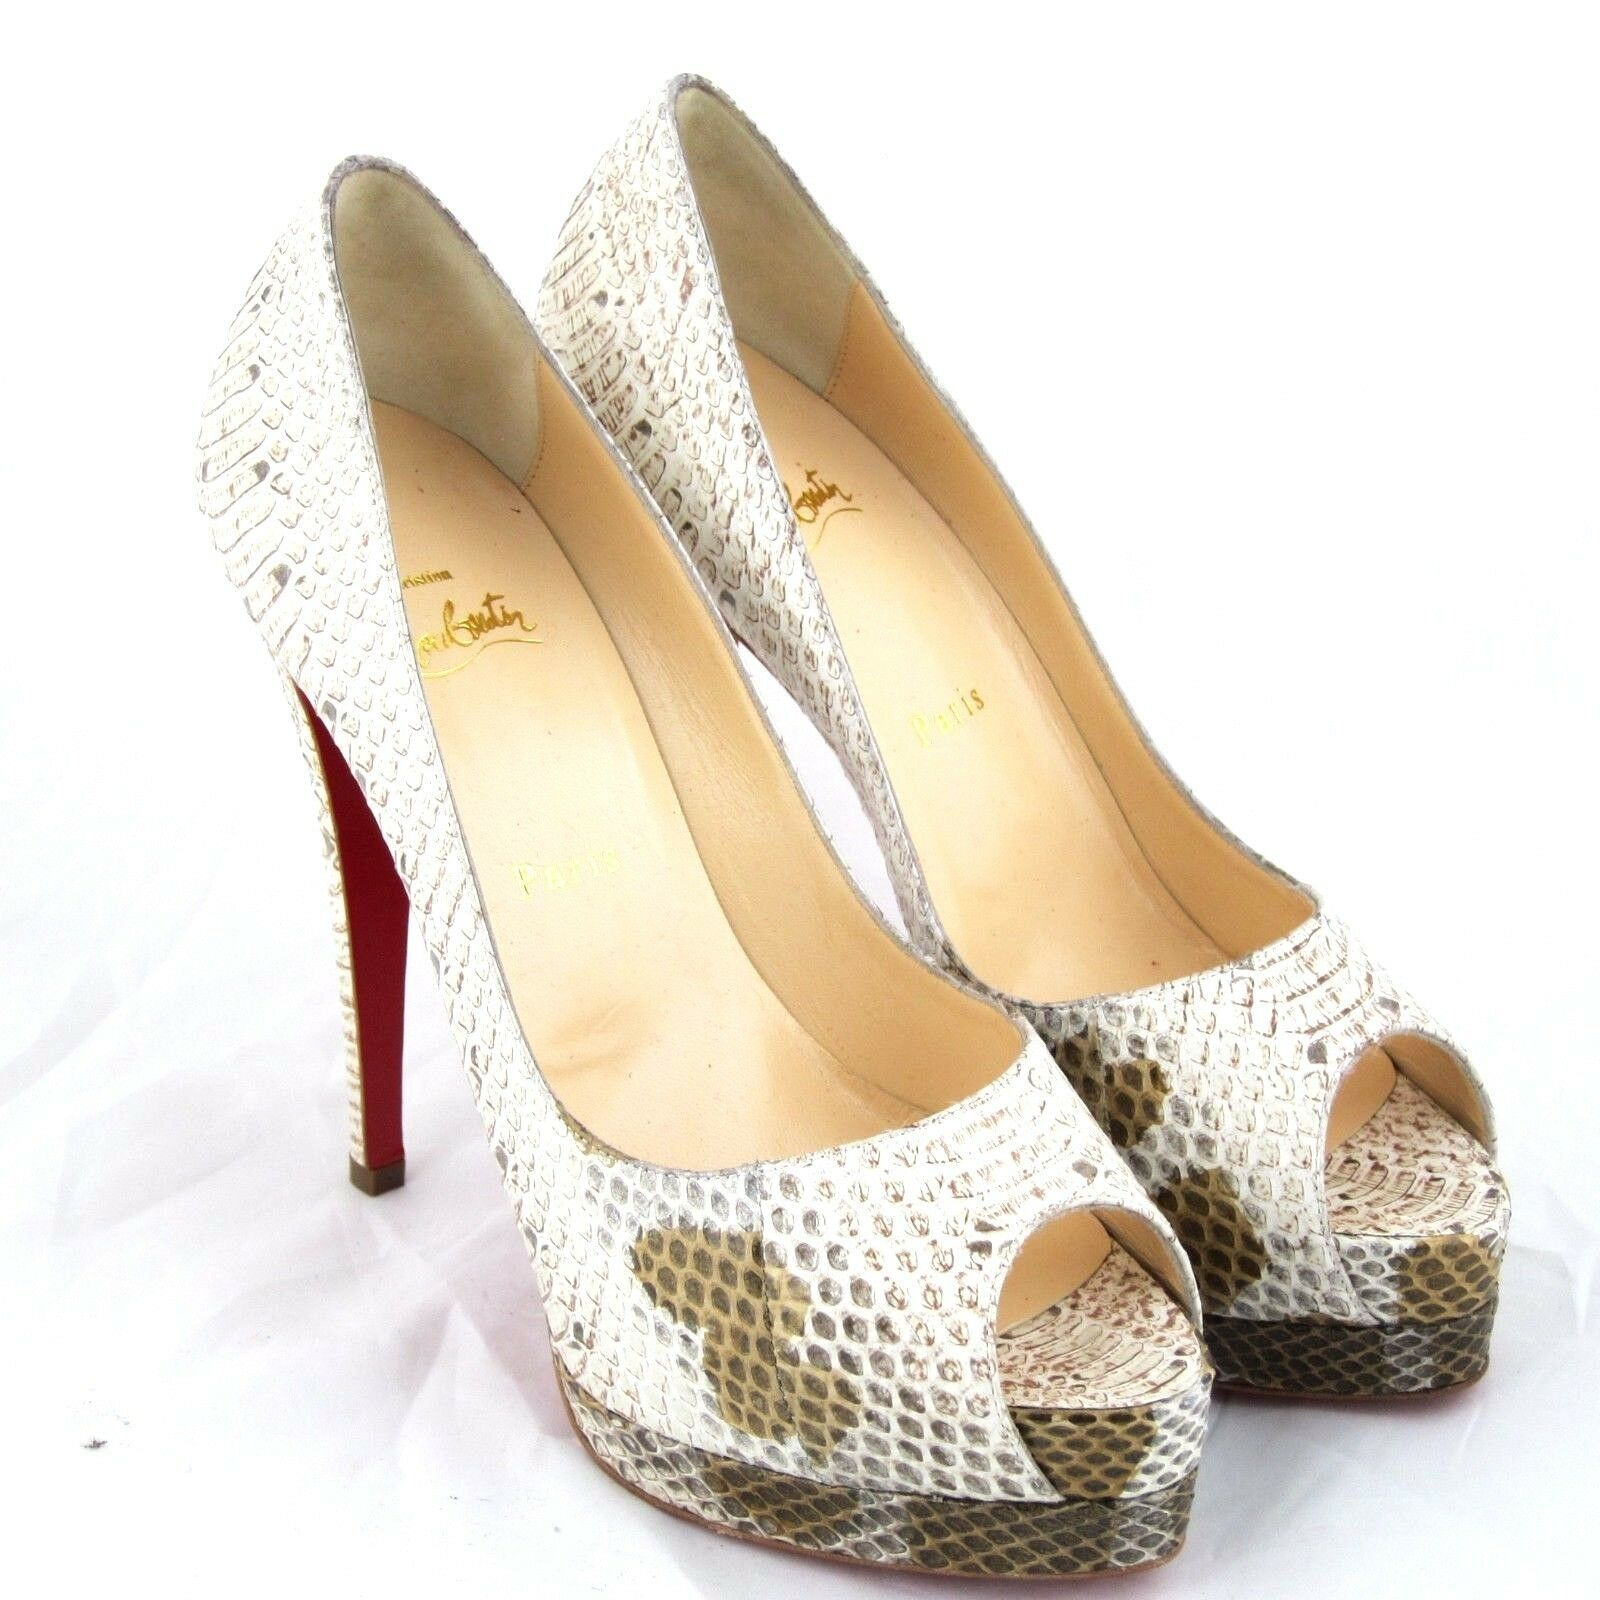 235edc75842 Christian Louboutin Heel: 1 customer review and 195 listings